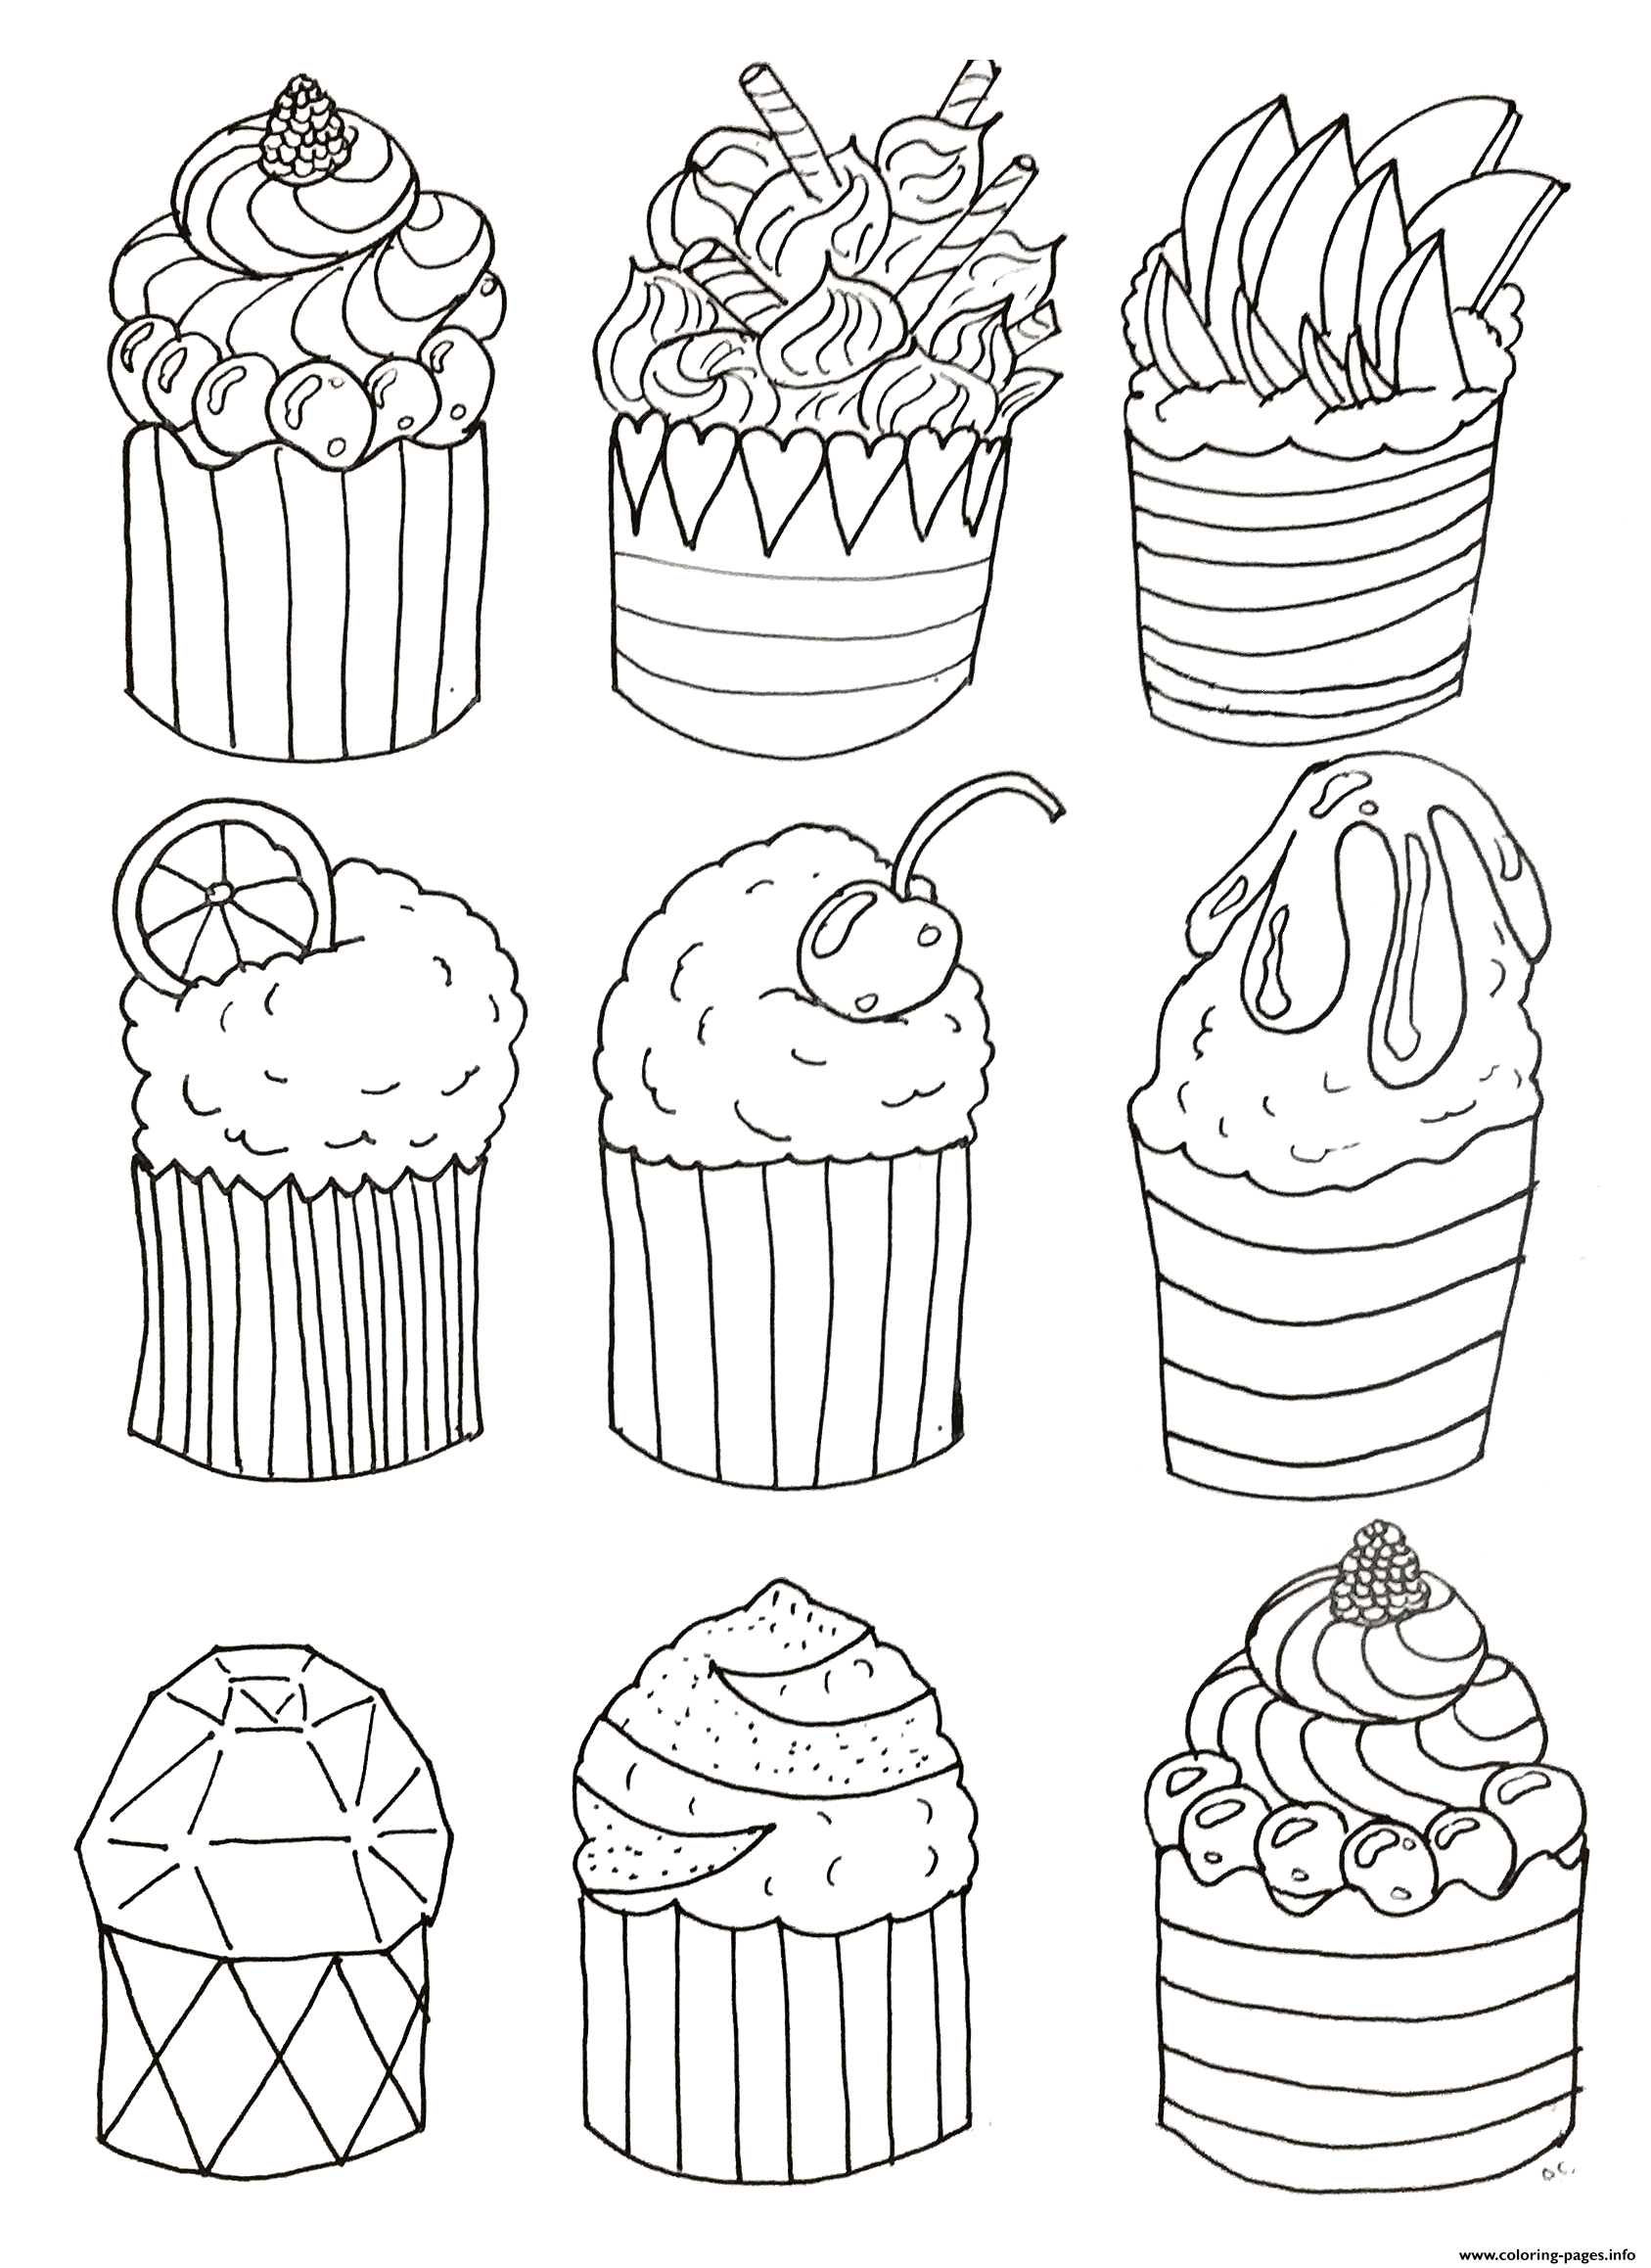 Print Simple Cupcakes By Olivier Coloring Pages Cupcake Coloring Pages Unicorn Coloring Pages Coloring Books